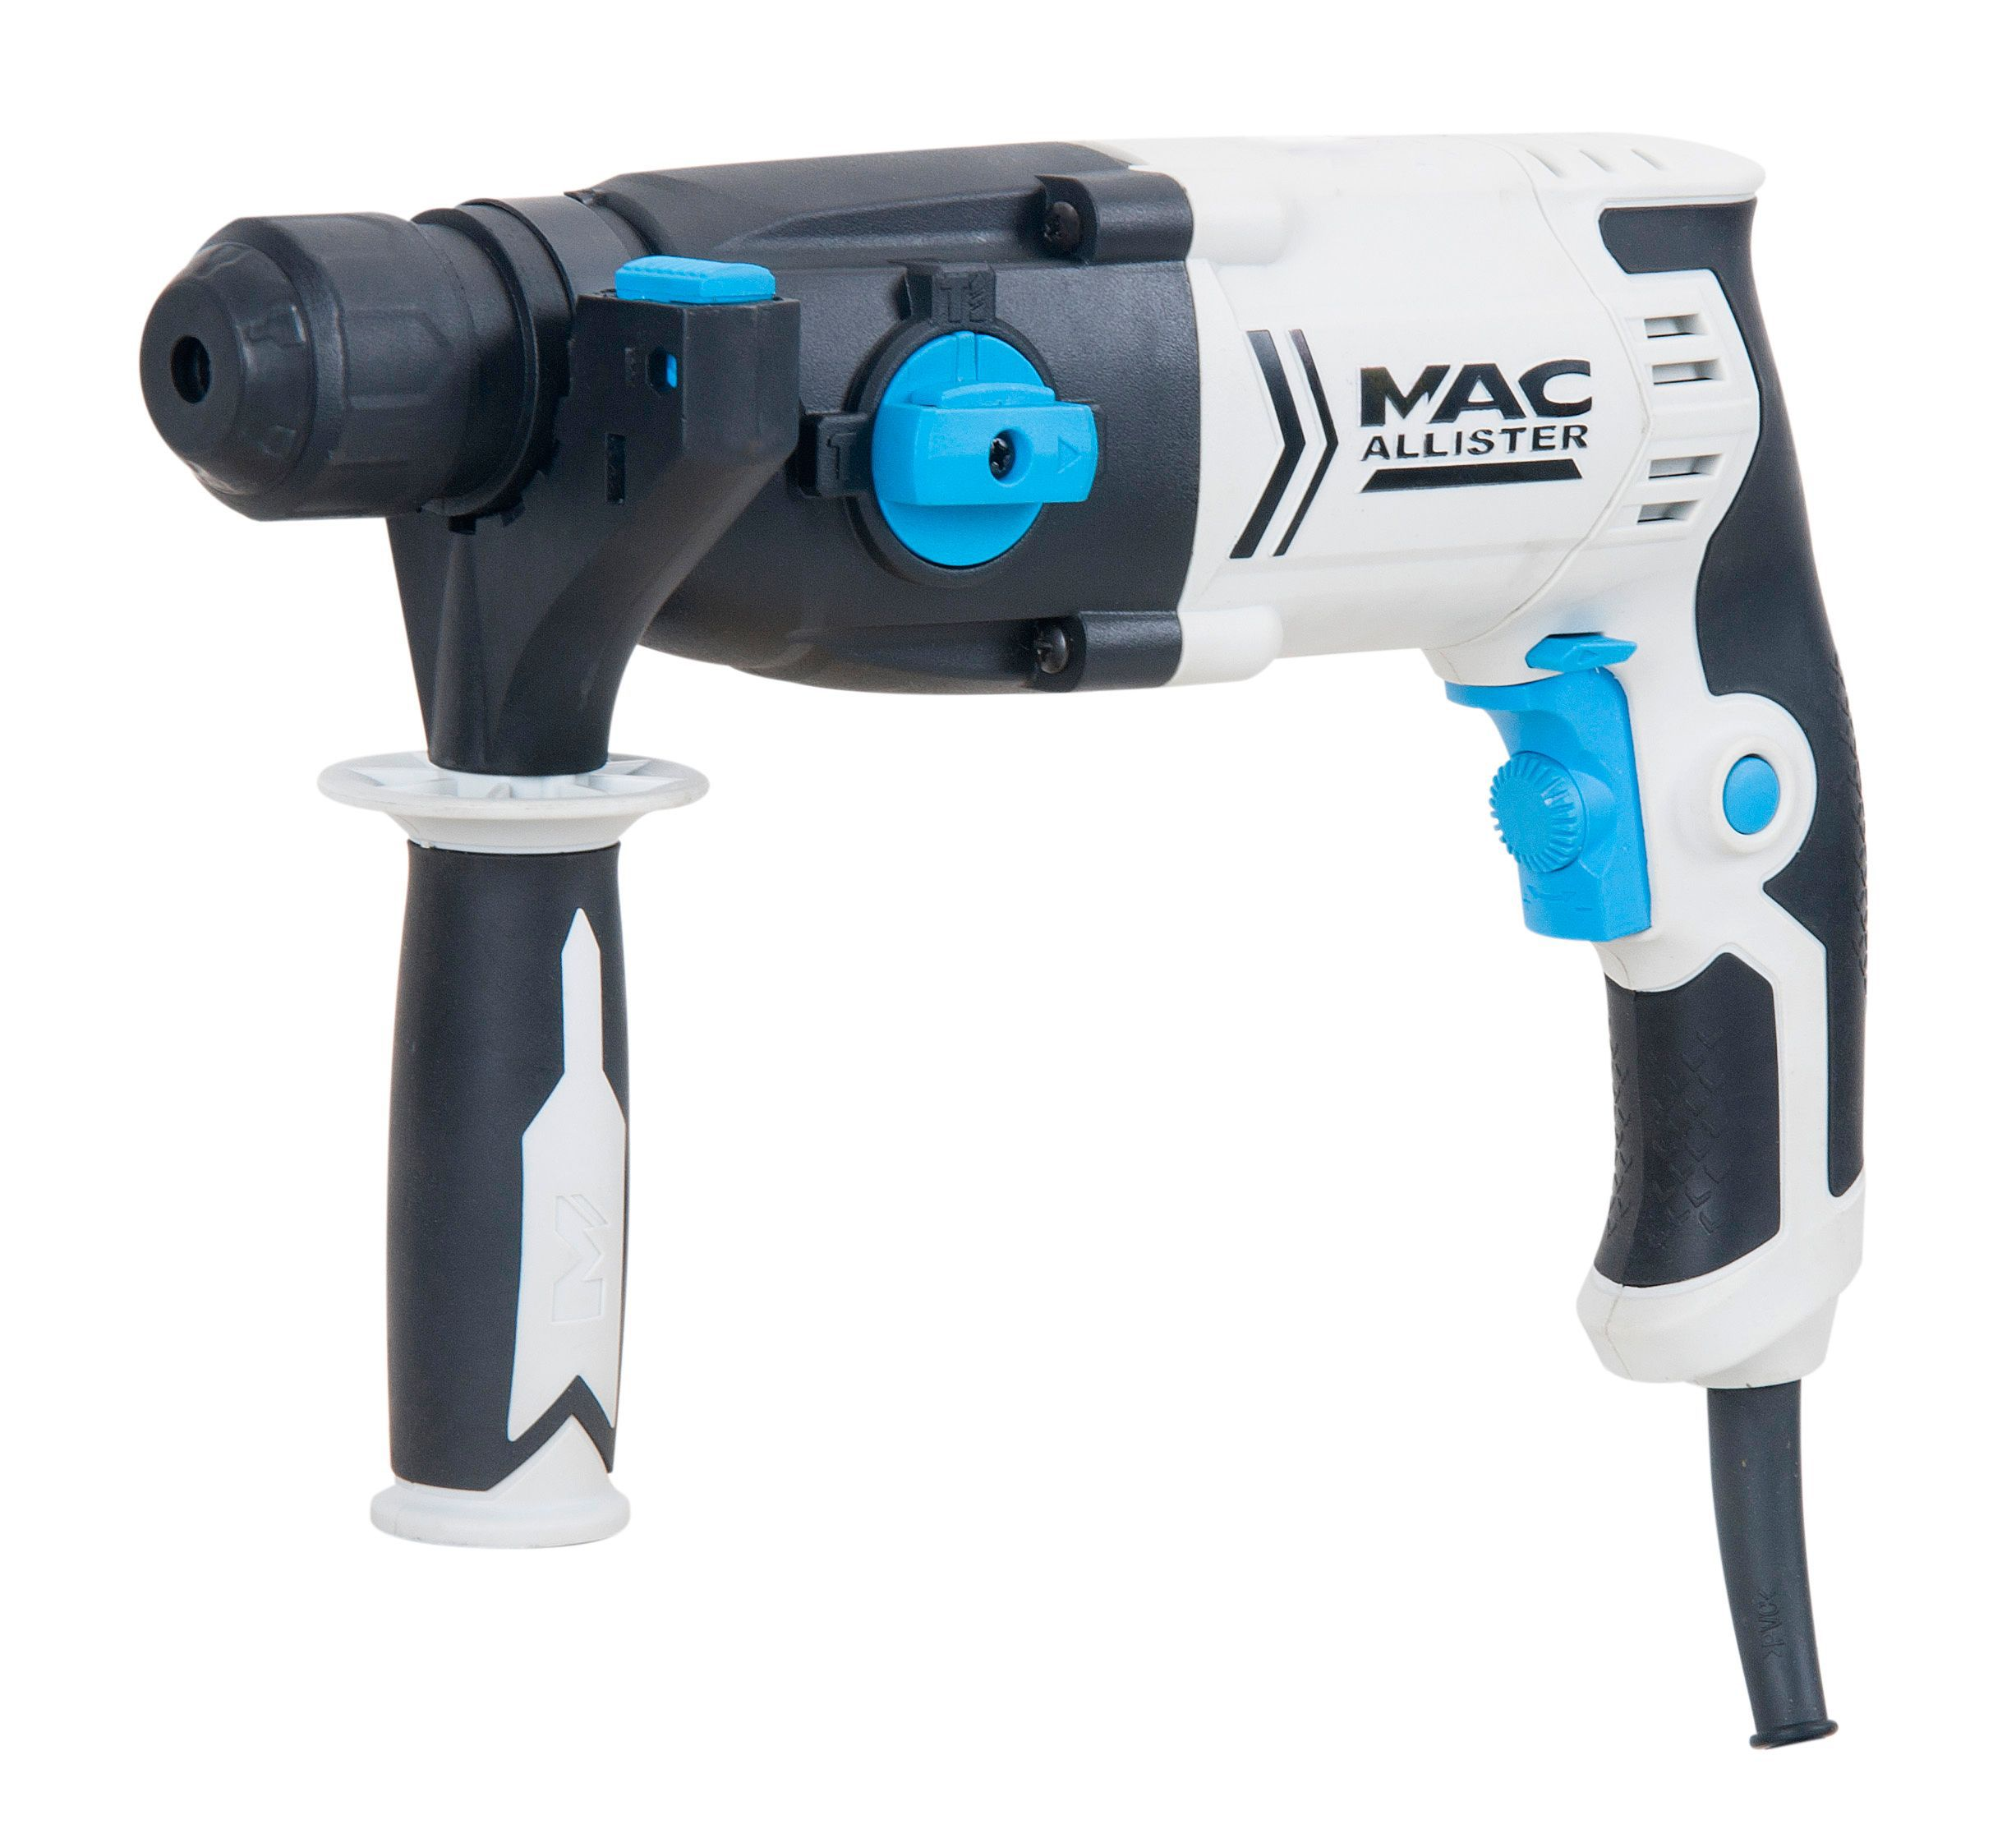 mac allister 600w corded sds plus rotary hammer drill. Black Bedroom Furniture Sets. Home Design Ideas